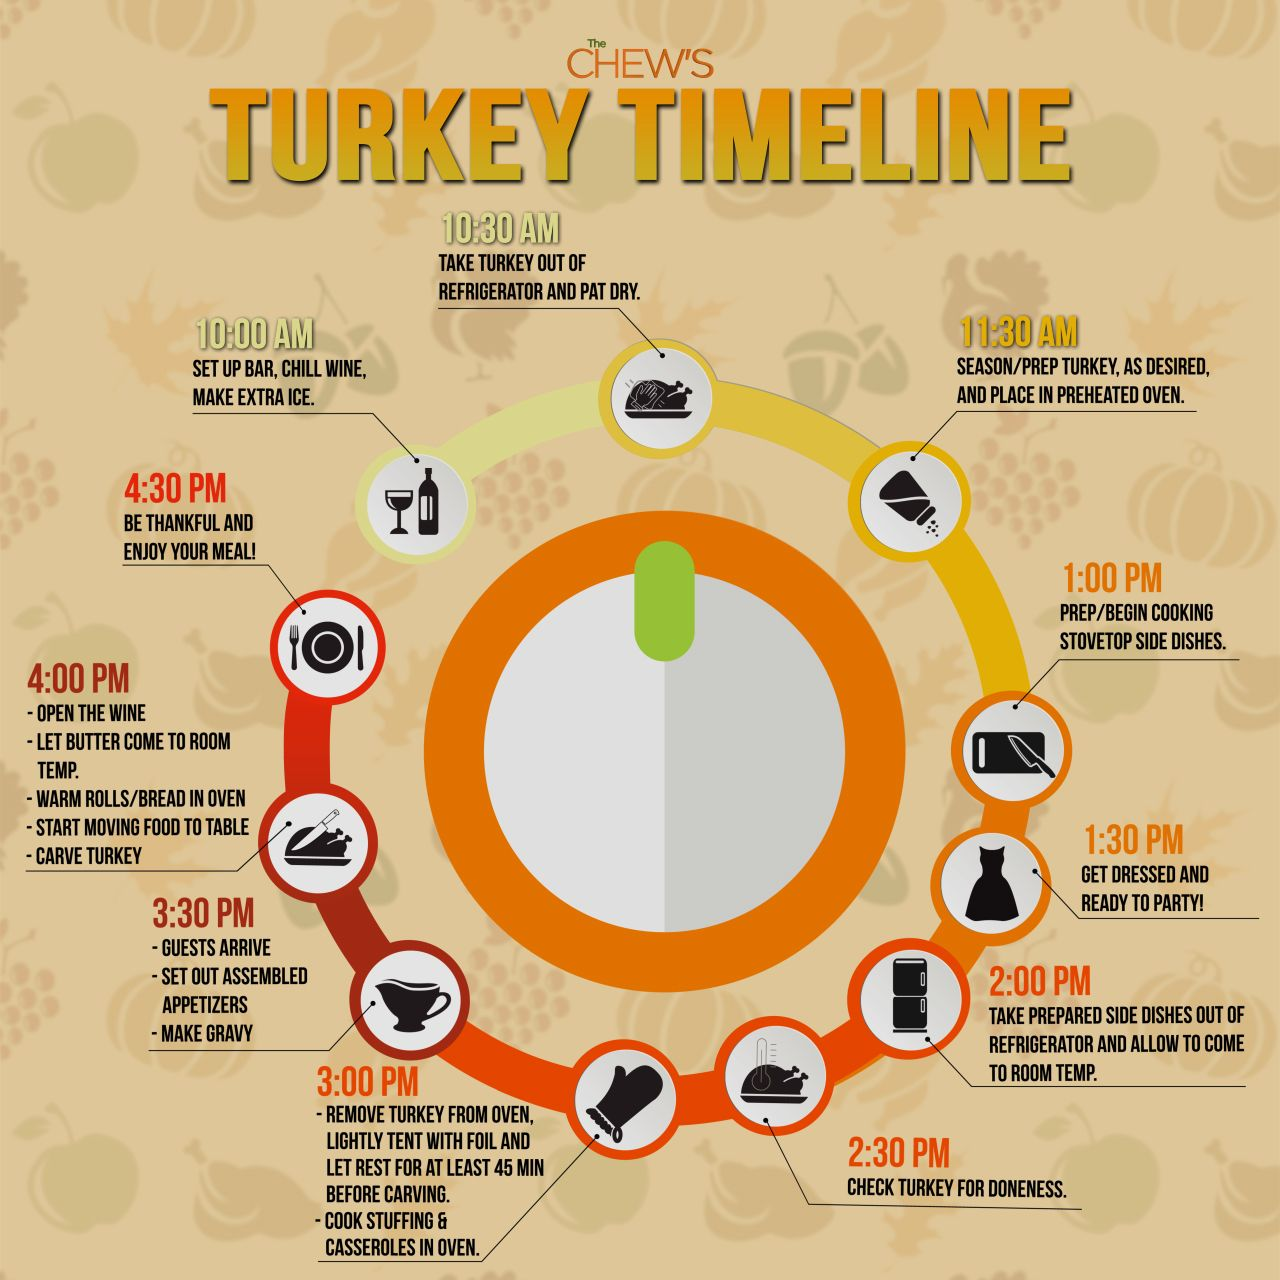 Turkey Timeline 11 22 17 With Images